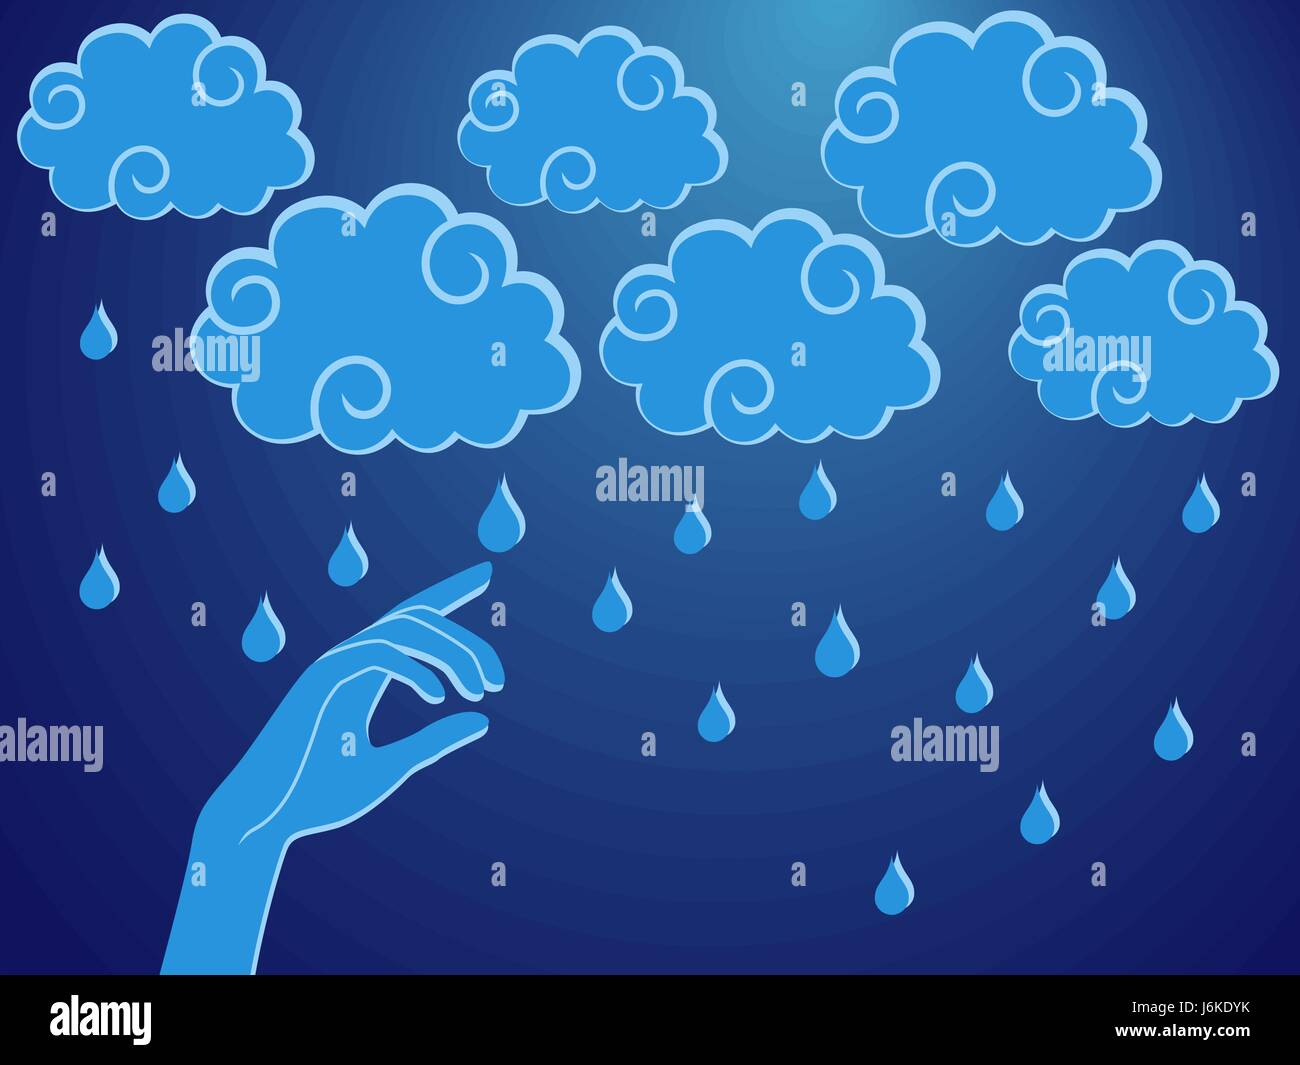 Human hand touching a rain droplet, stylised conceptual vector illustration - Stock Vector